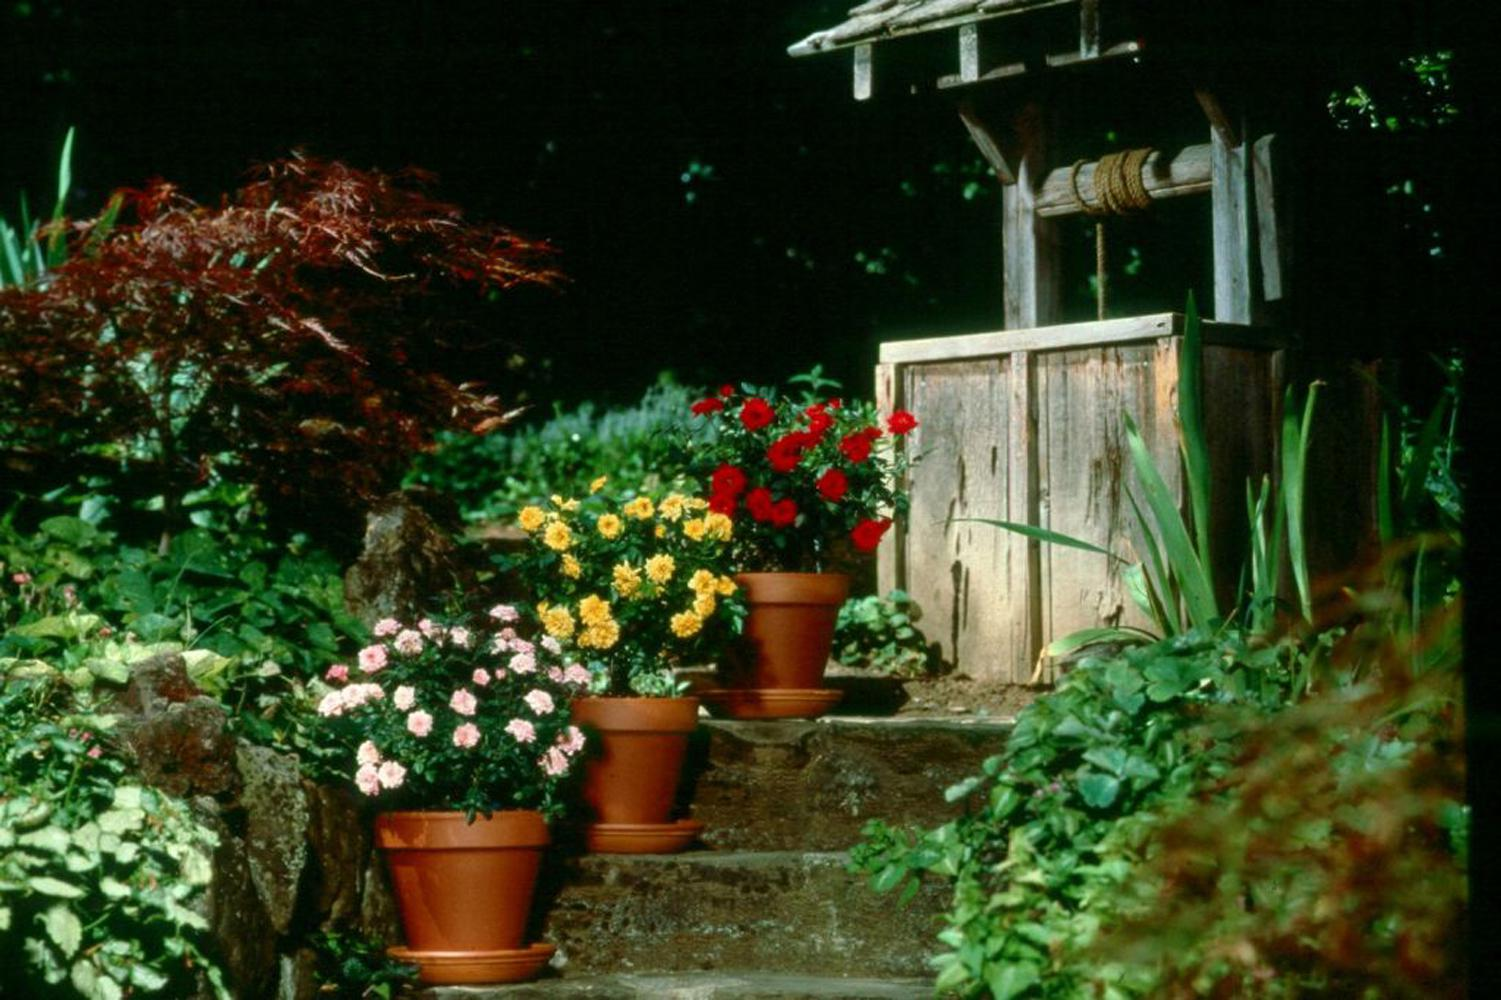 Containers may be the perfect place for small, manageable flower gardens. Stair-stepping containers at the home's entryway will make visitors feel welcome.